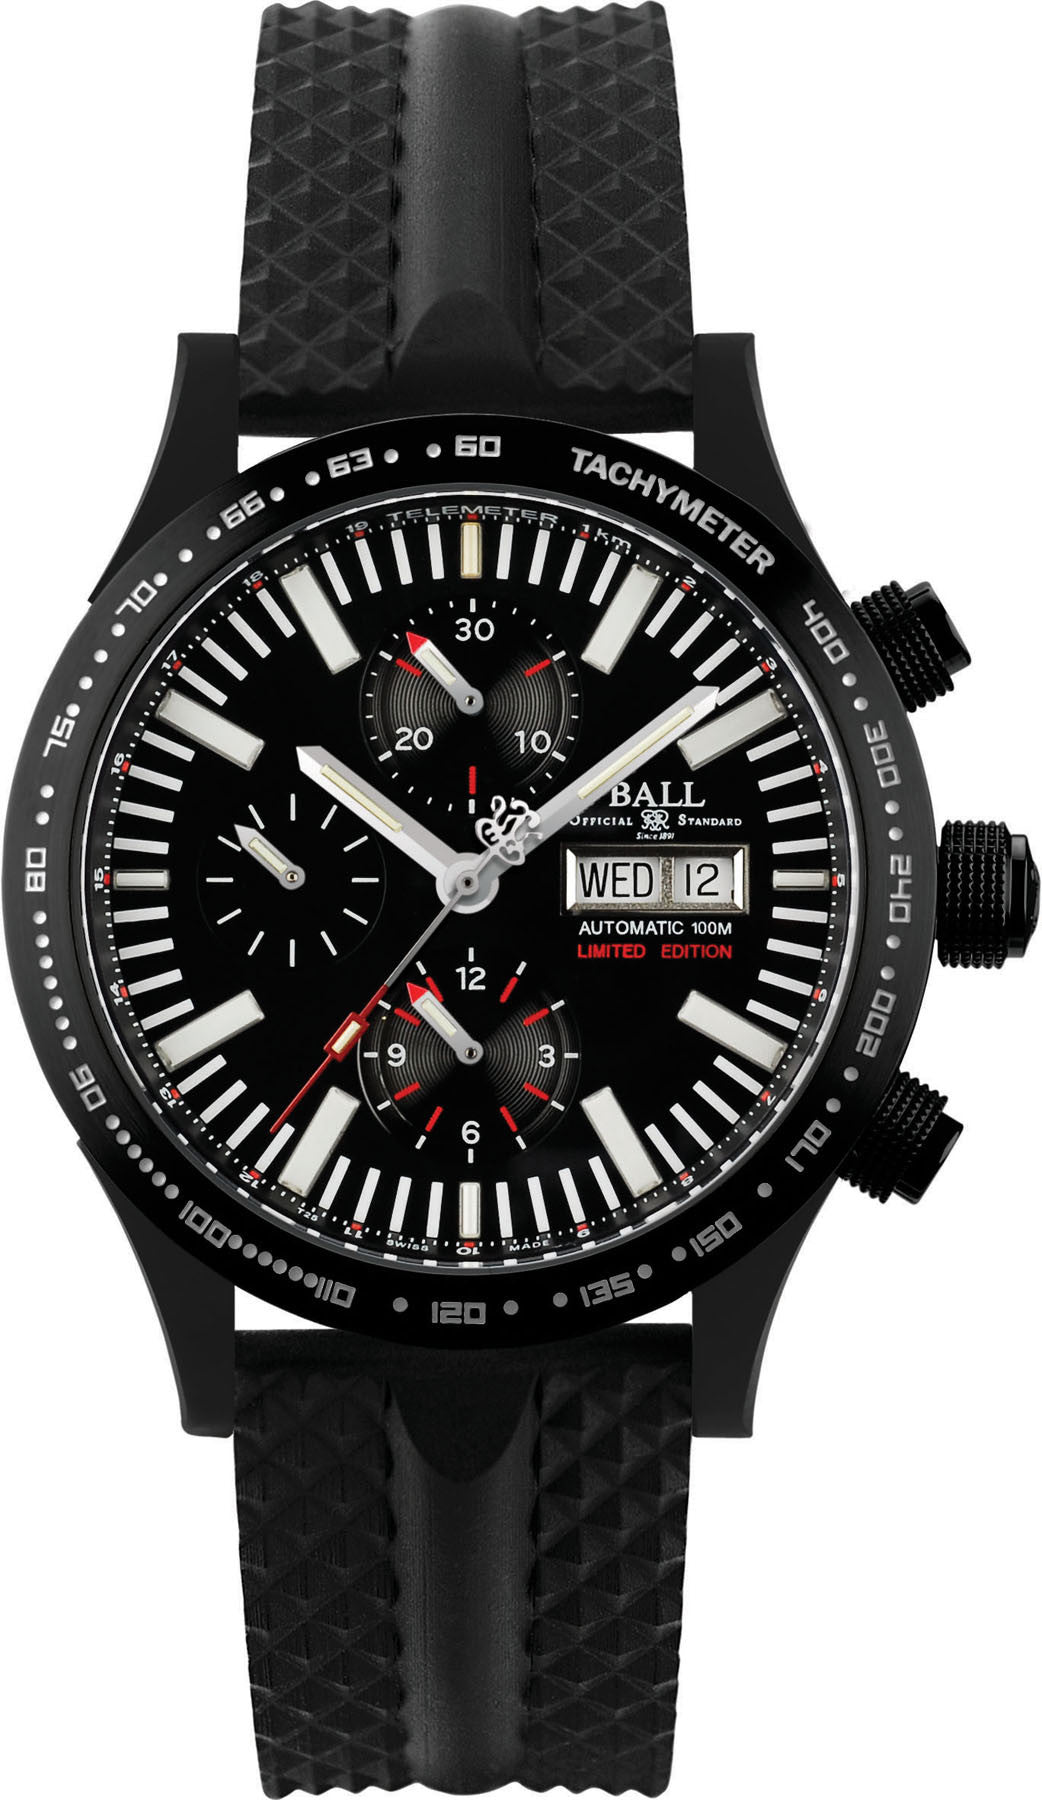 Ball Watch Company Fireman Storm Chaser DLC Limited Edition